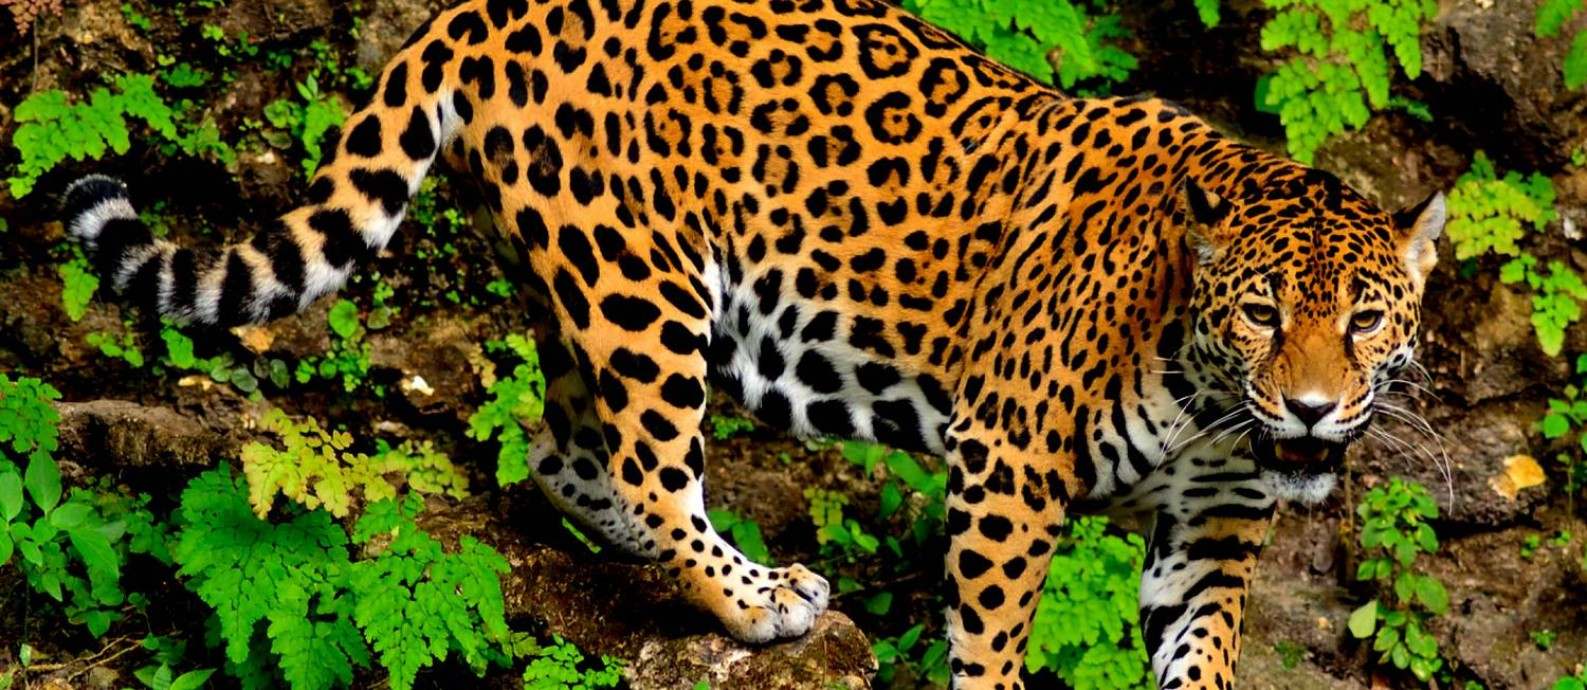 In addition, the jaguar also stands out with one of the animals symbols of Amazonian fauna.